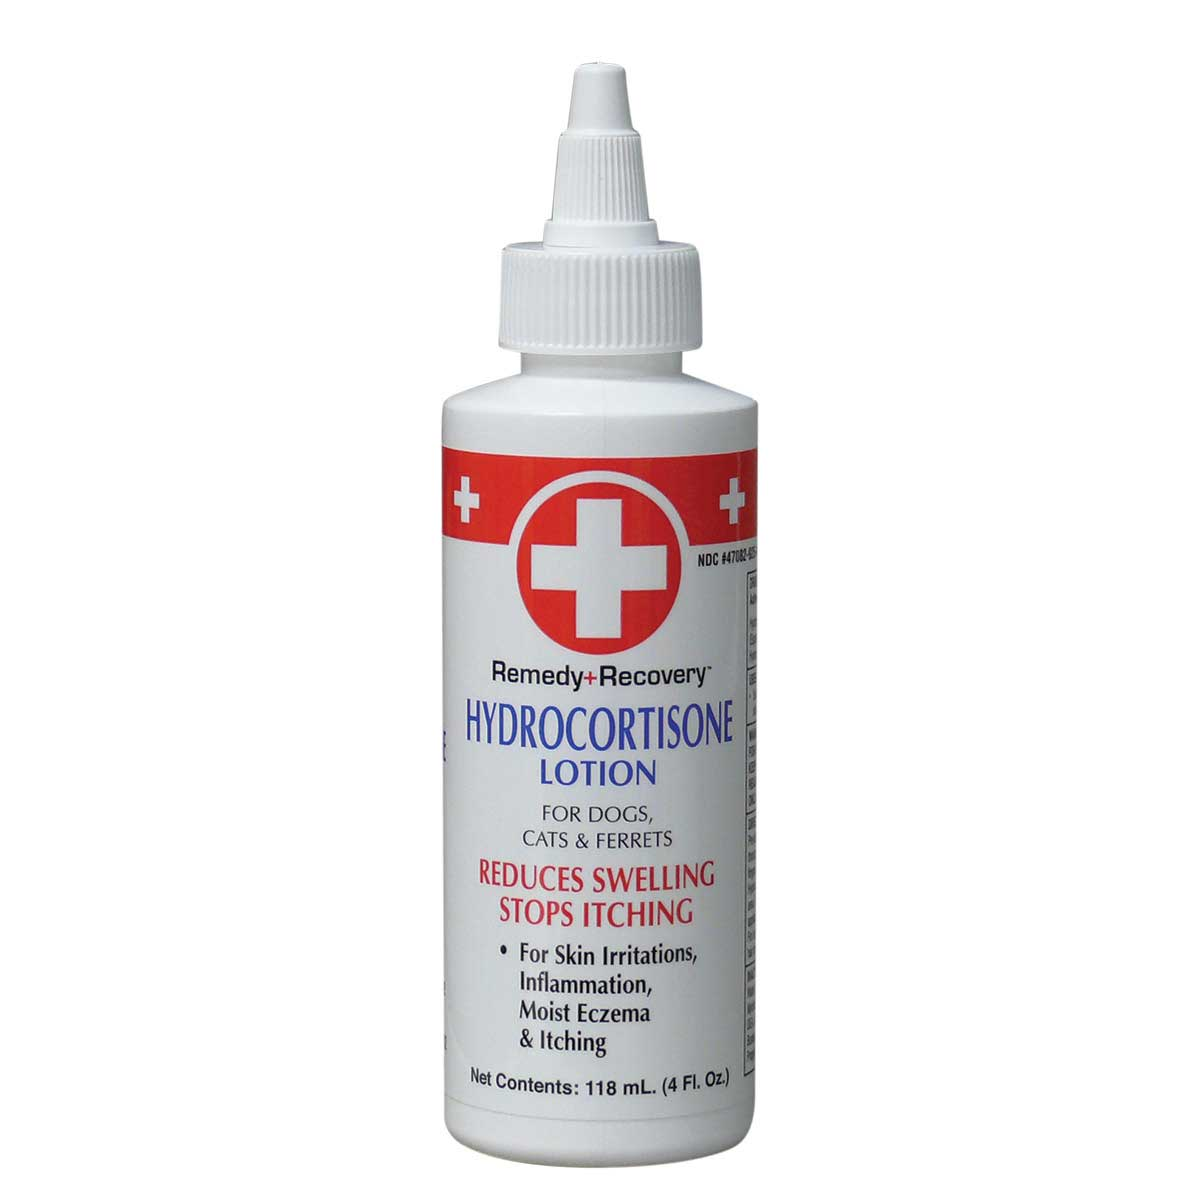 Remedy + Recover Hydrocortisone Lotion 4 ounce